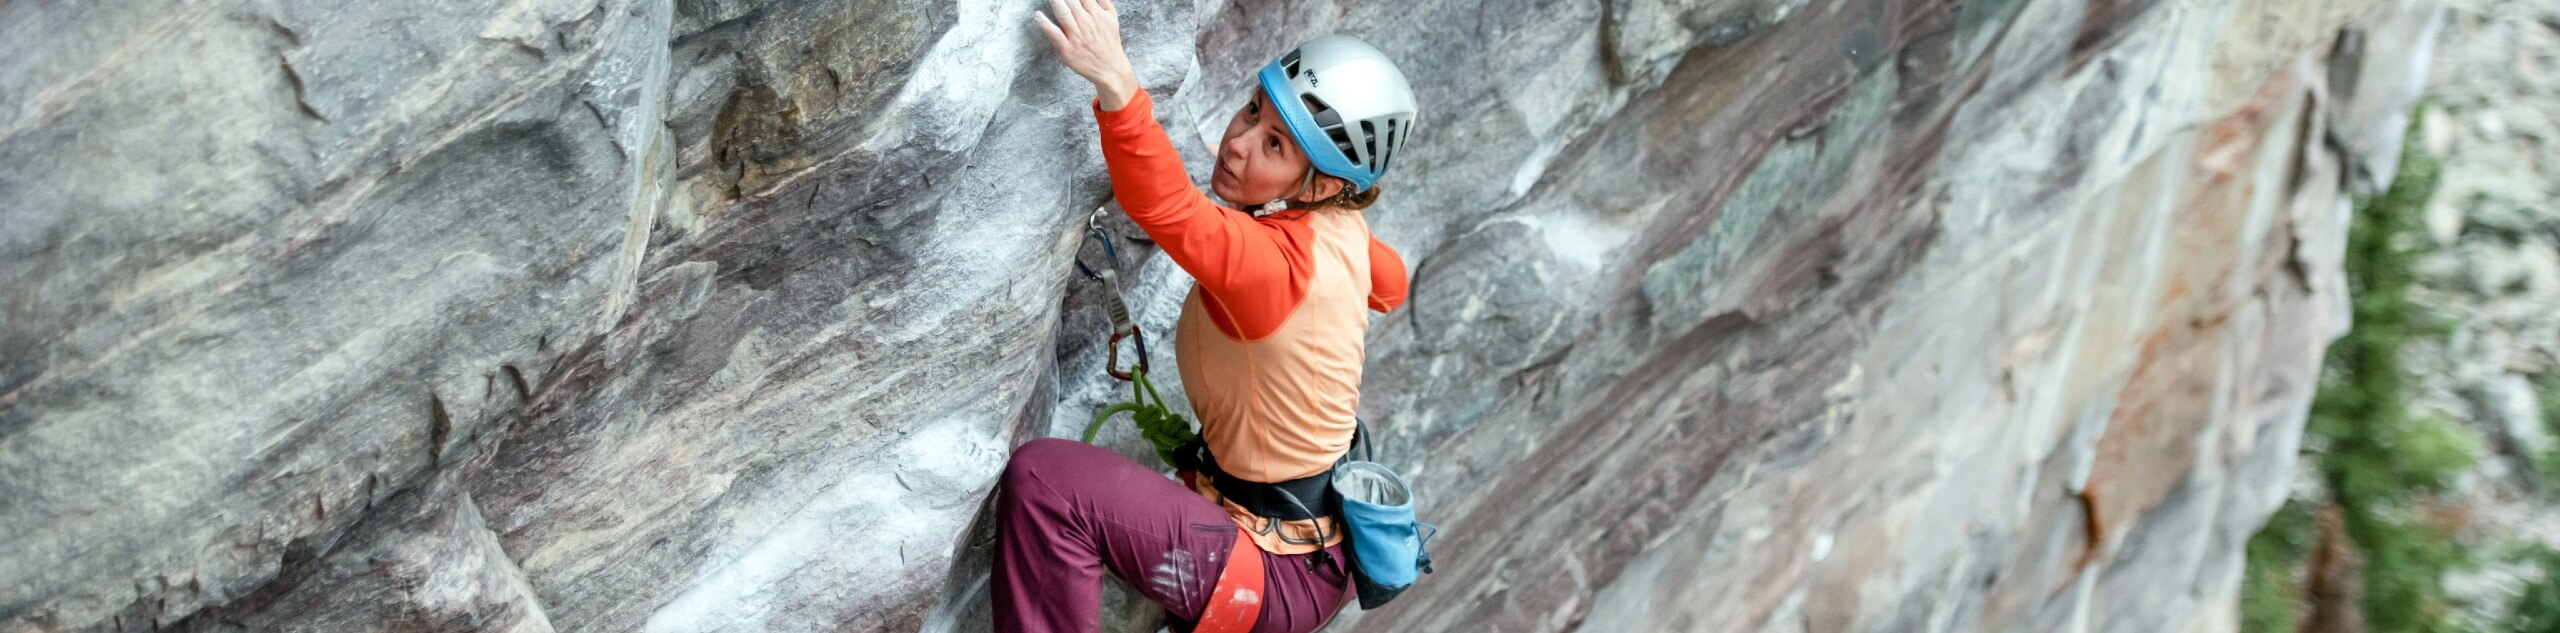 Outdoor Rock Climbing Level 2 in the Canadian Rockies